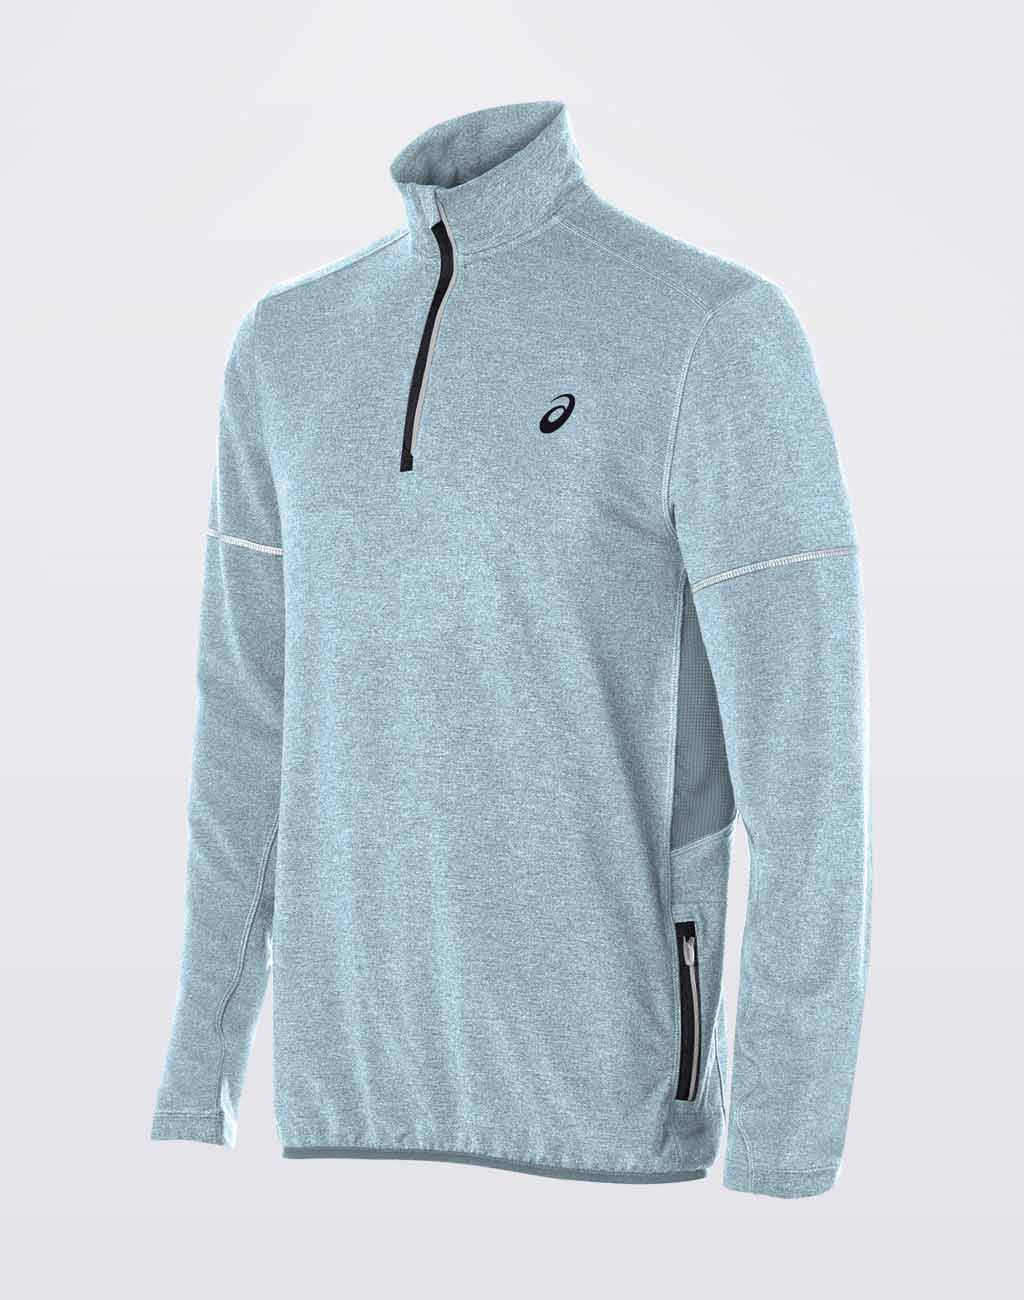 Lightweight Fleece 1/2 Zip (Men's)